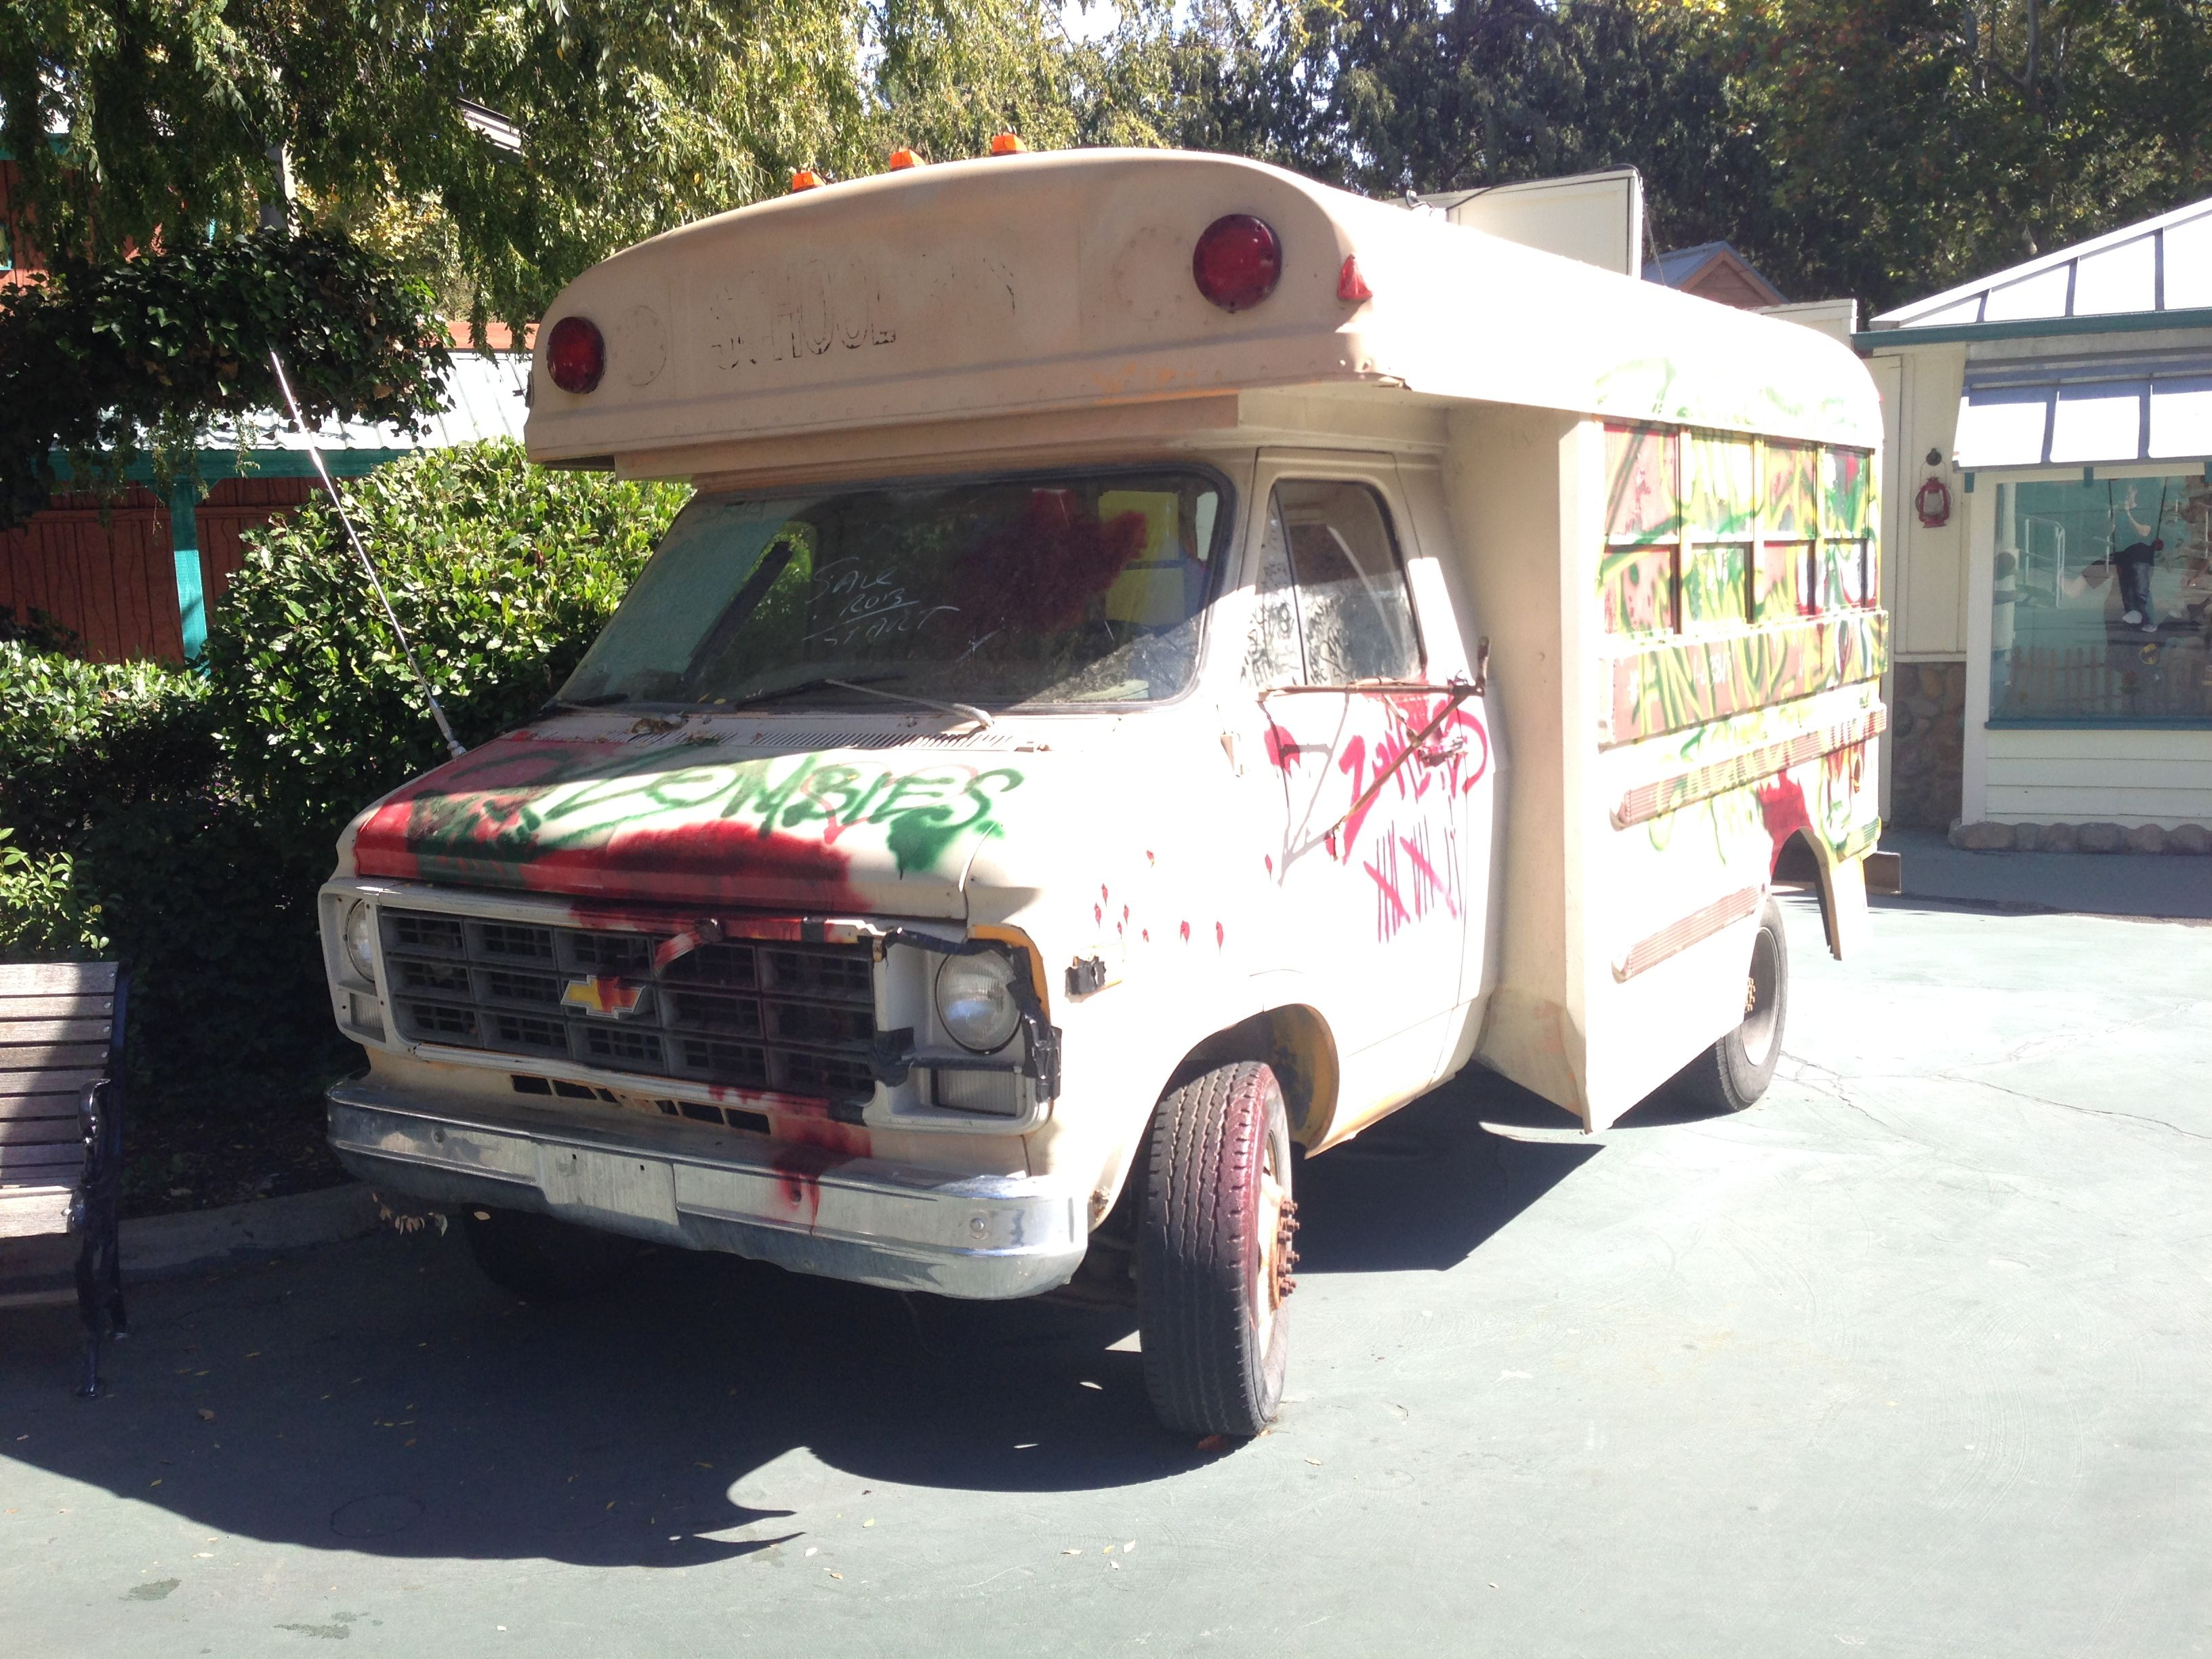 Six Flags Magic Mountain Fright Fest Zombie Bus Recreational Vehicles Car Themes Military Vehicles